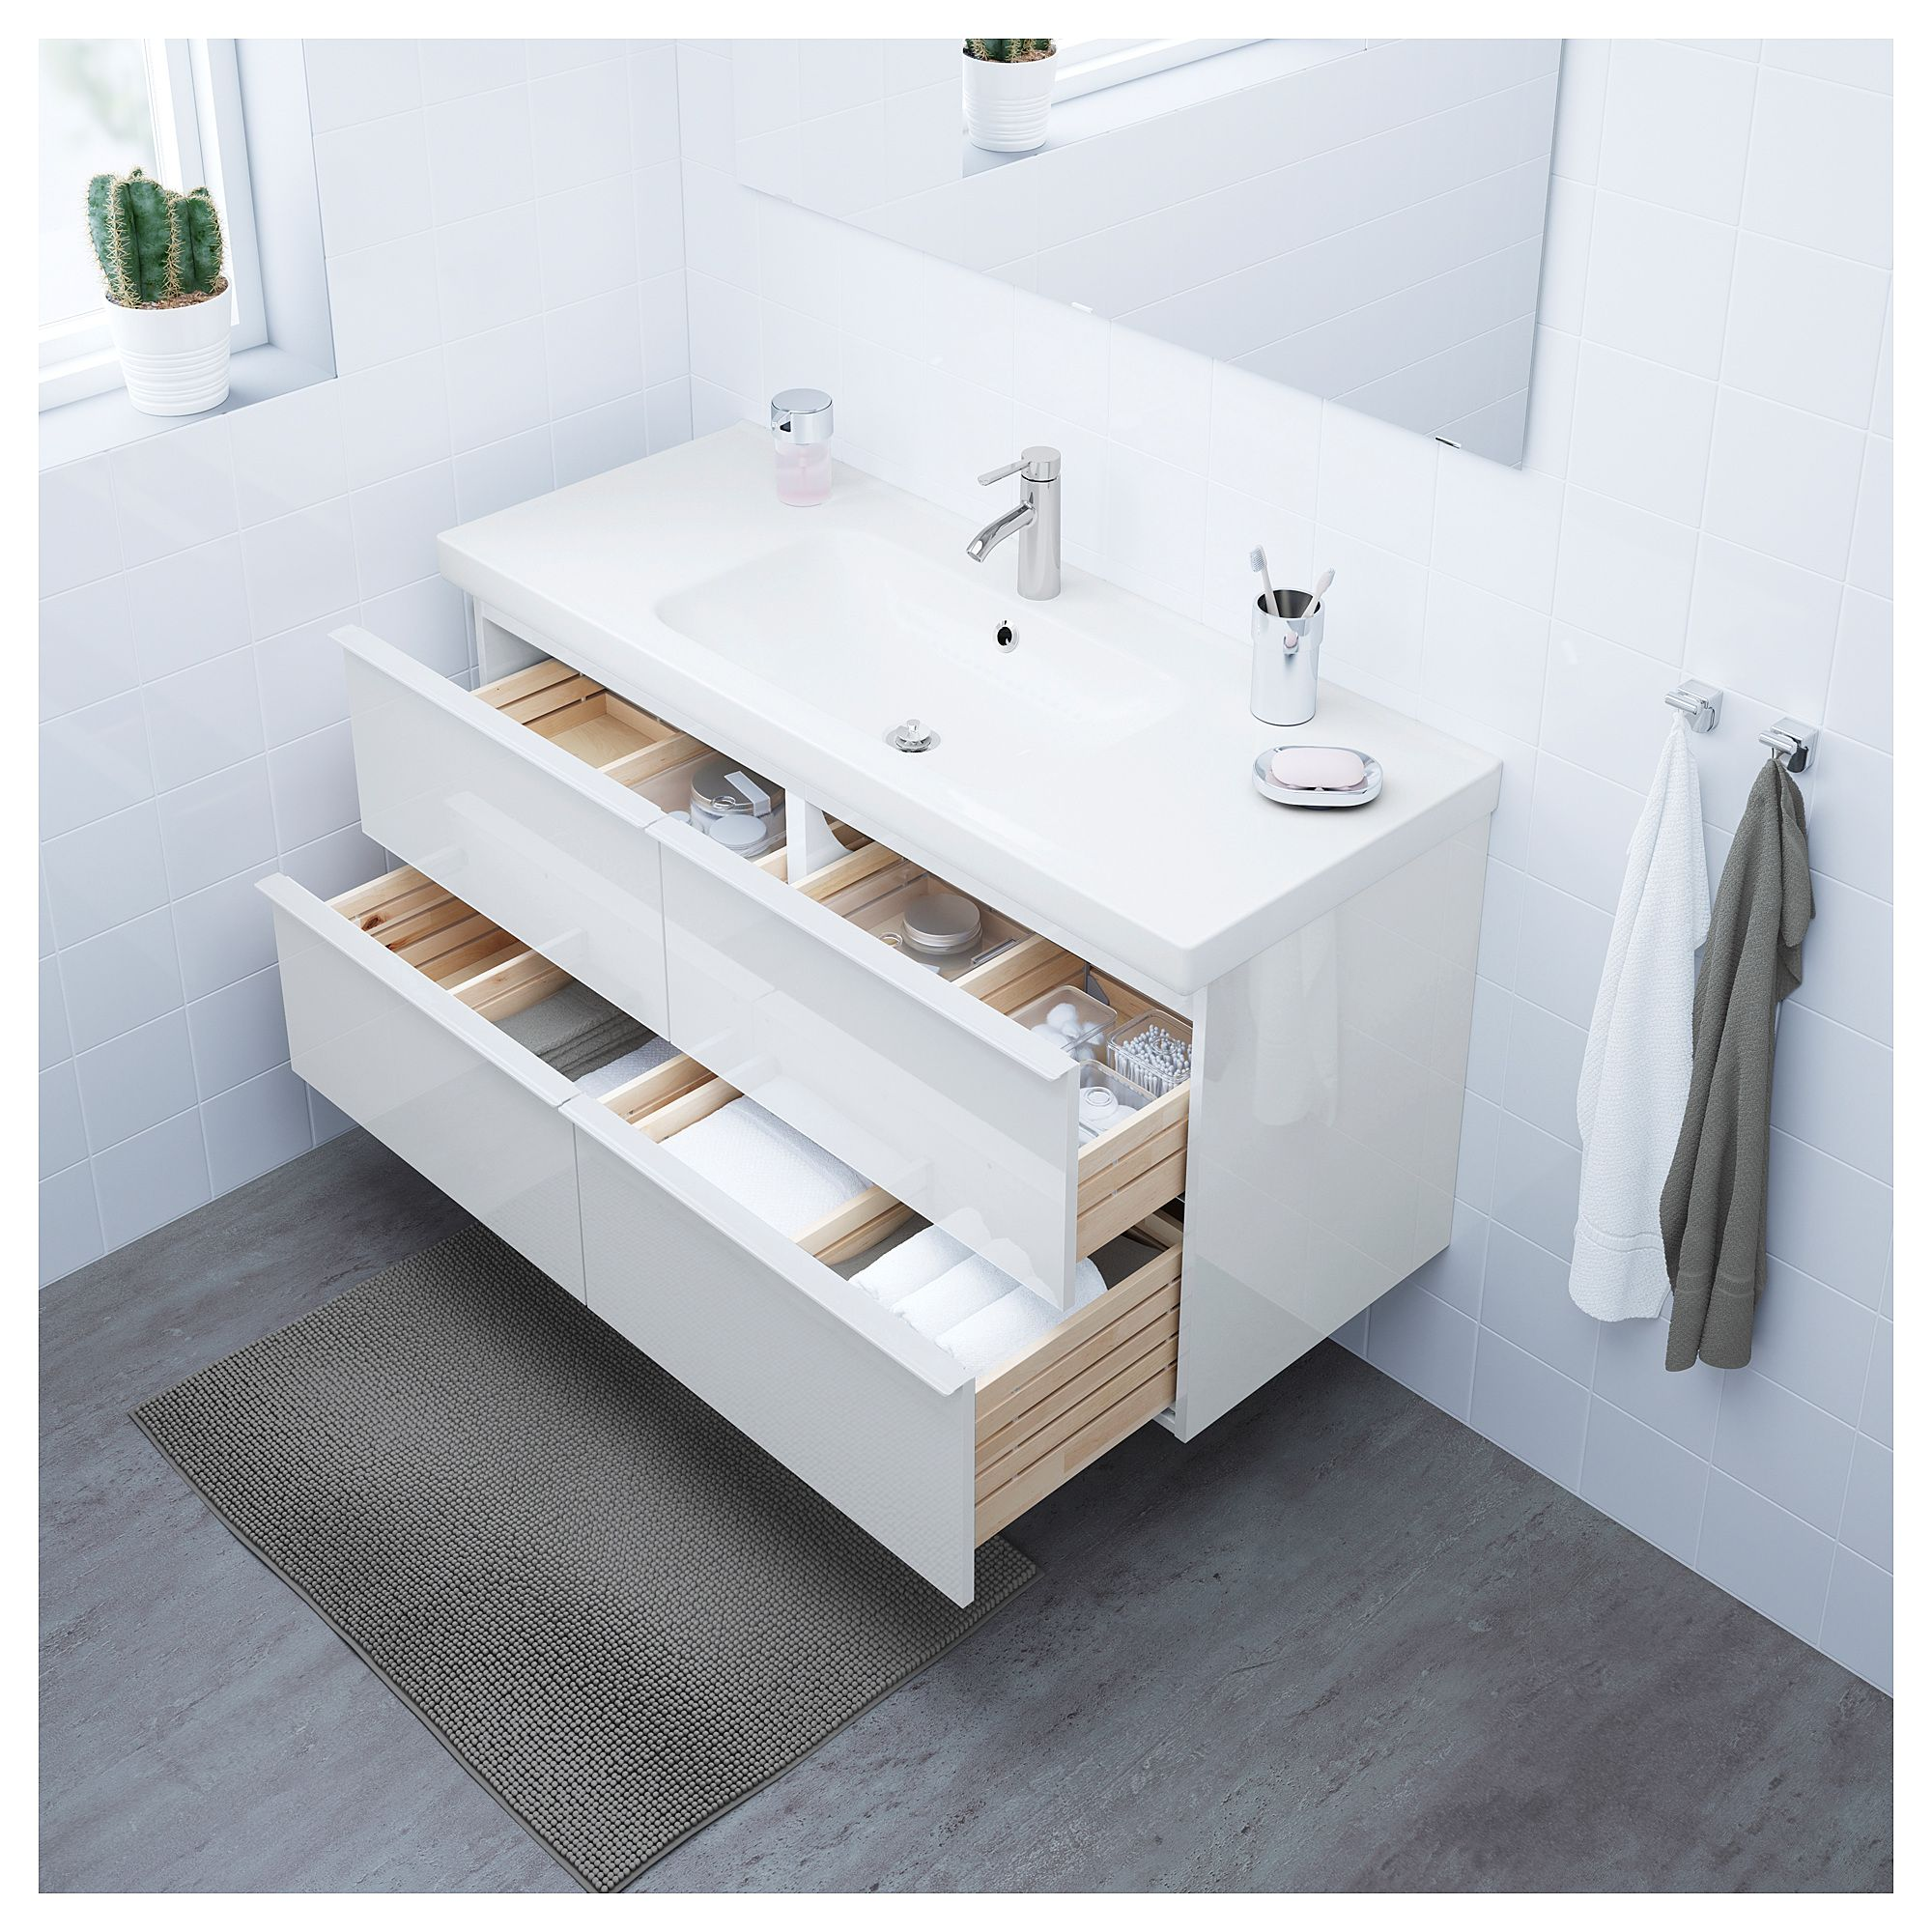 Godmorgon mobile alto bathroom beautiful bathroom storage ideas ikea of ikea cabinet from ikea - Godmorgon ikea mobile alto ...